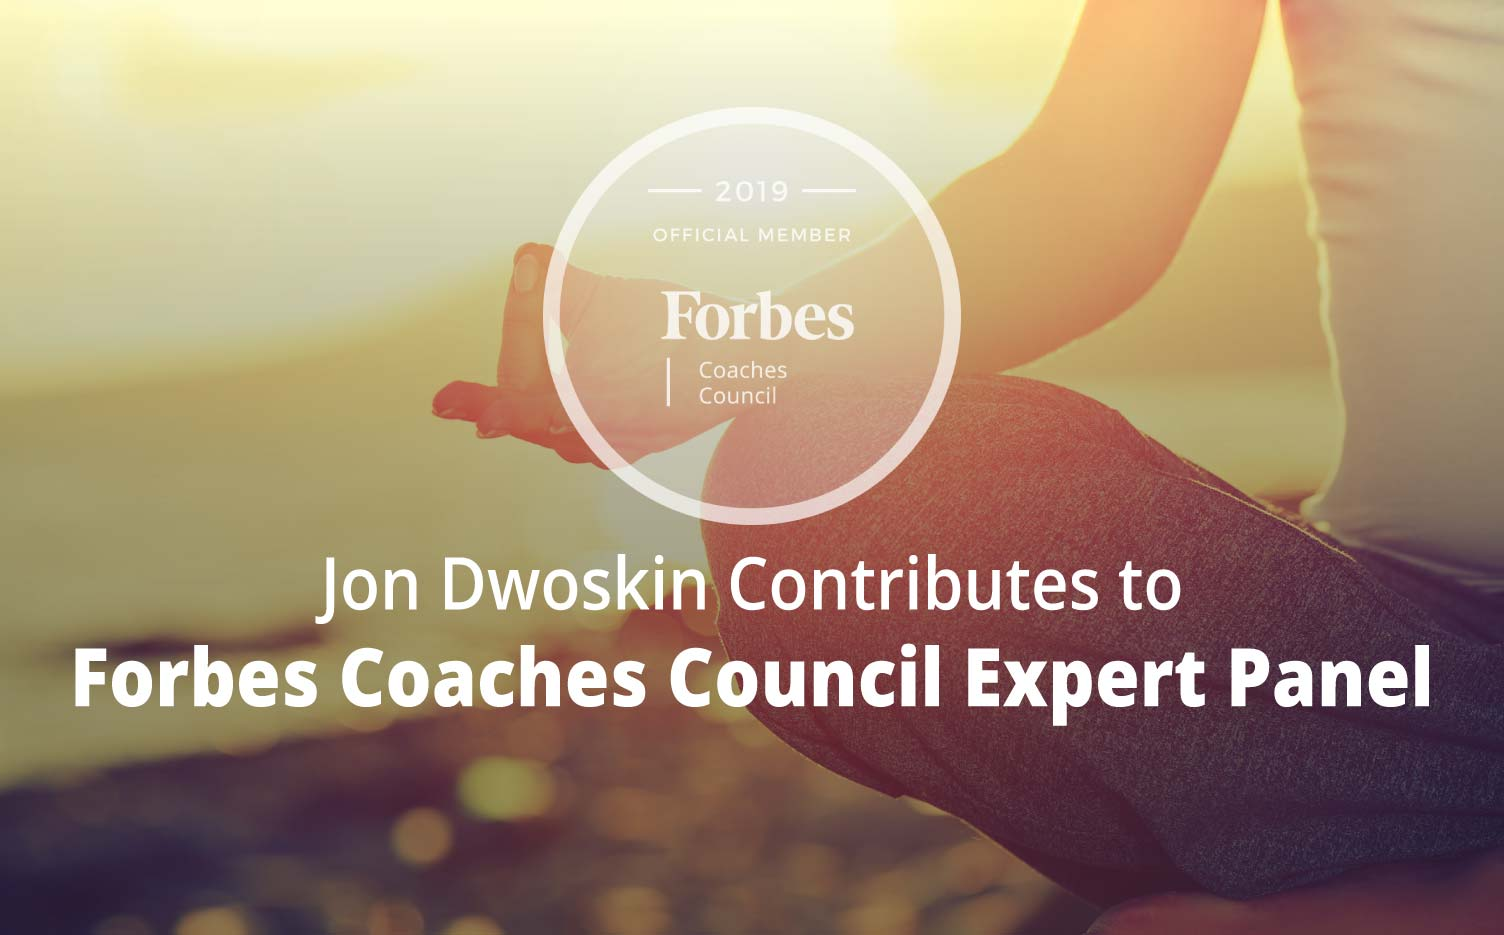 Jon Contributes to Forbes Coaches Council Expert Panel: 11 Ways Coaches Can Improve Their Active Listening And Connect With Their CliJon Contributes to Forbes Coaches Council Expert Panel: 11 Ways Coaches Can Improve Their Active Listening And Connect With Their Clients